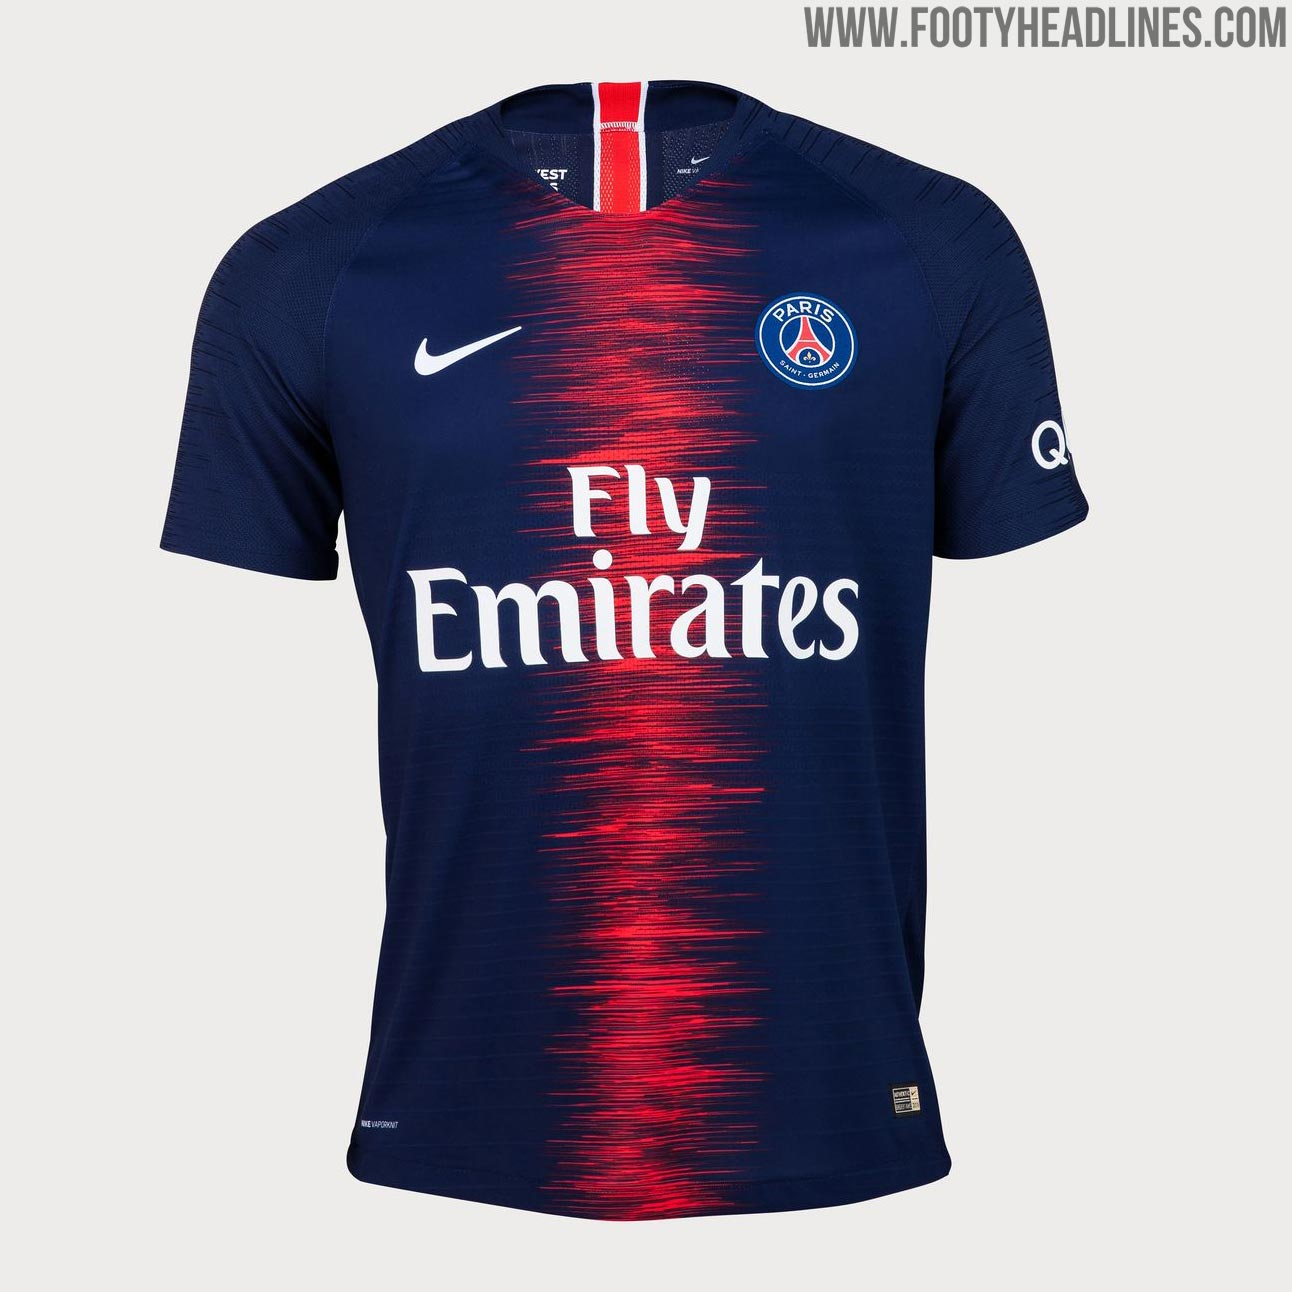 psg-18-19-home-kit-4.jpg